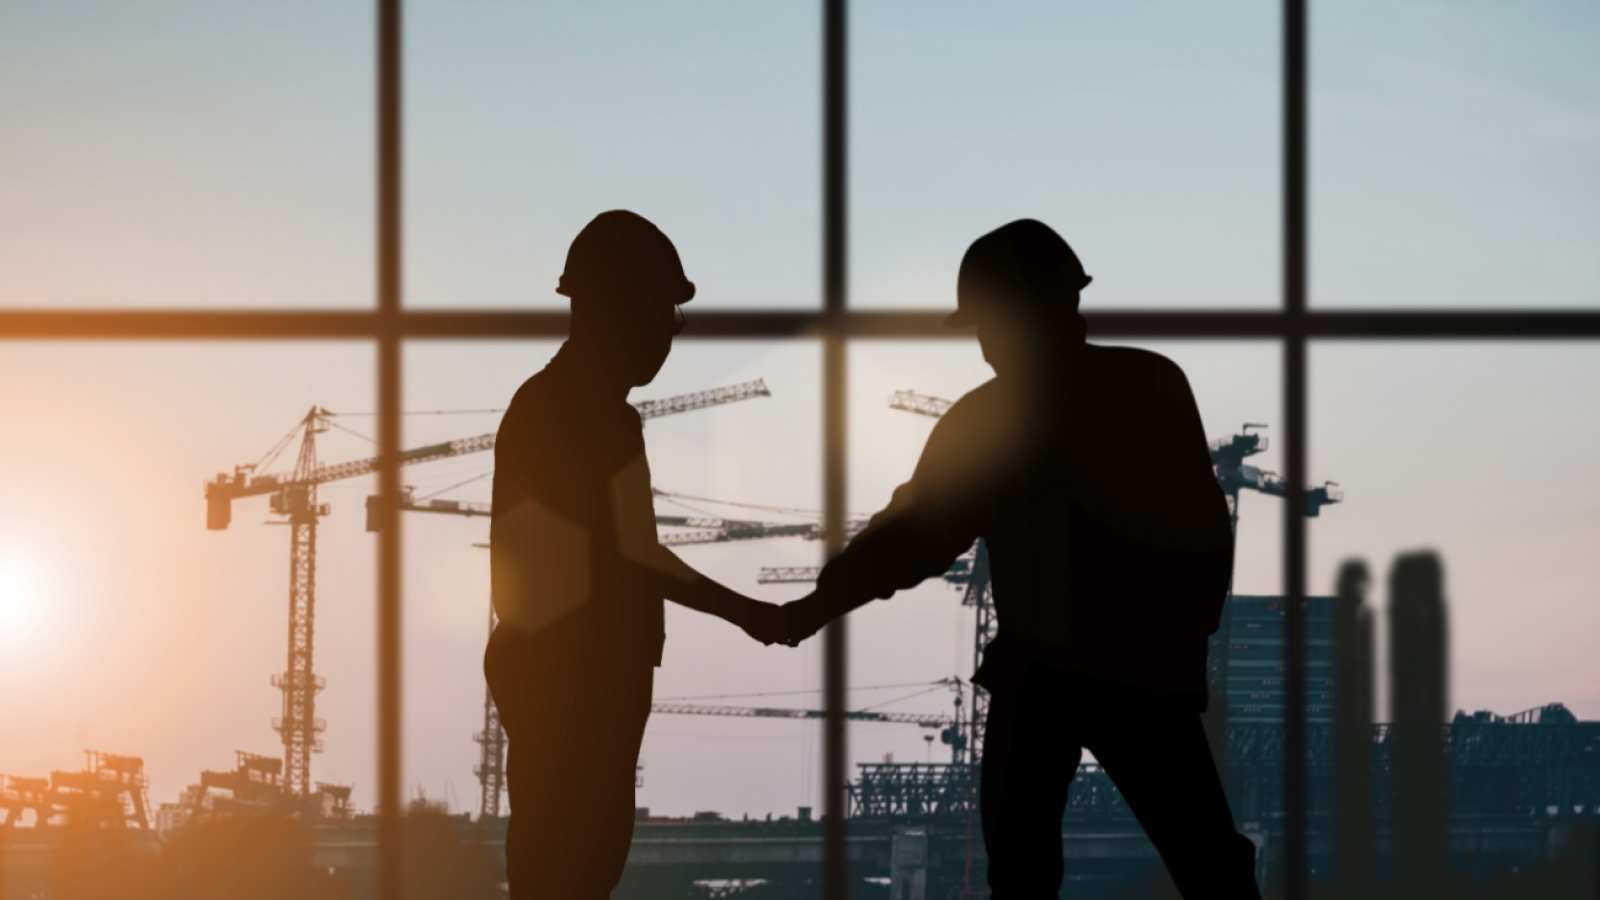 silhouetted workers shaking hands while wearing hardhats